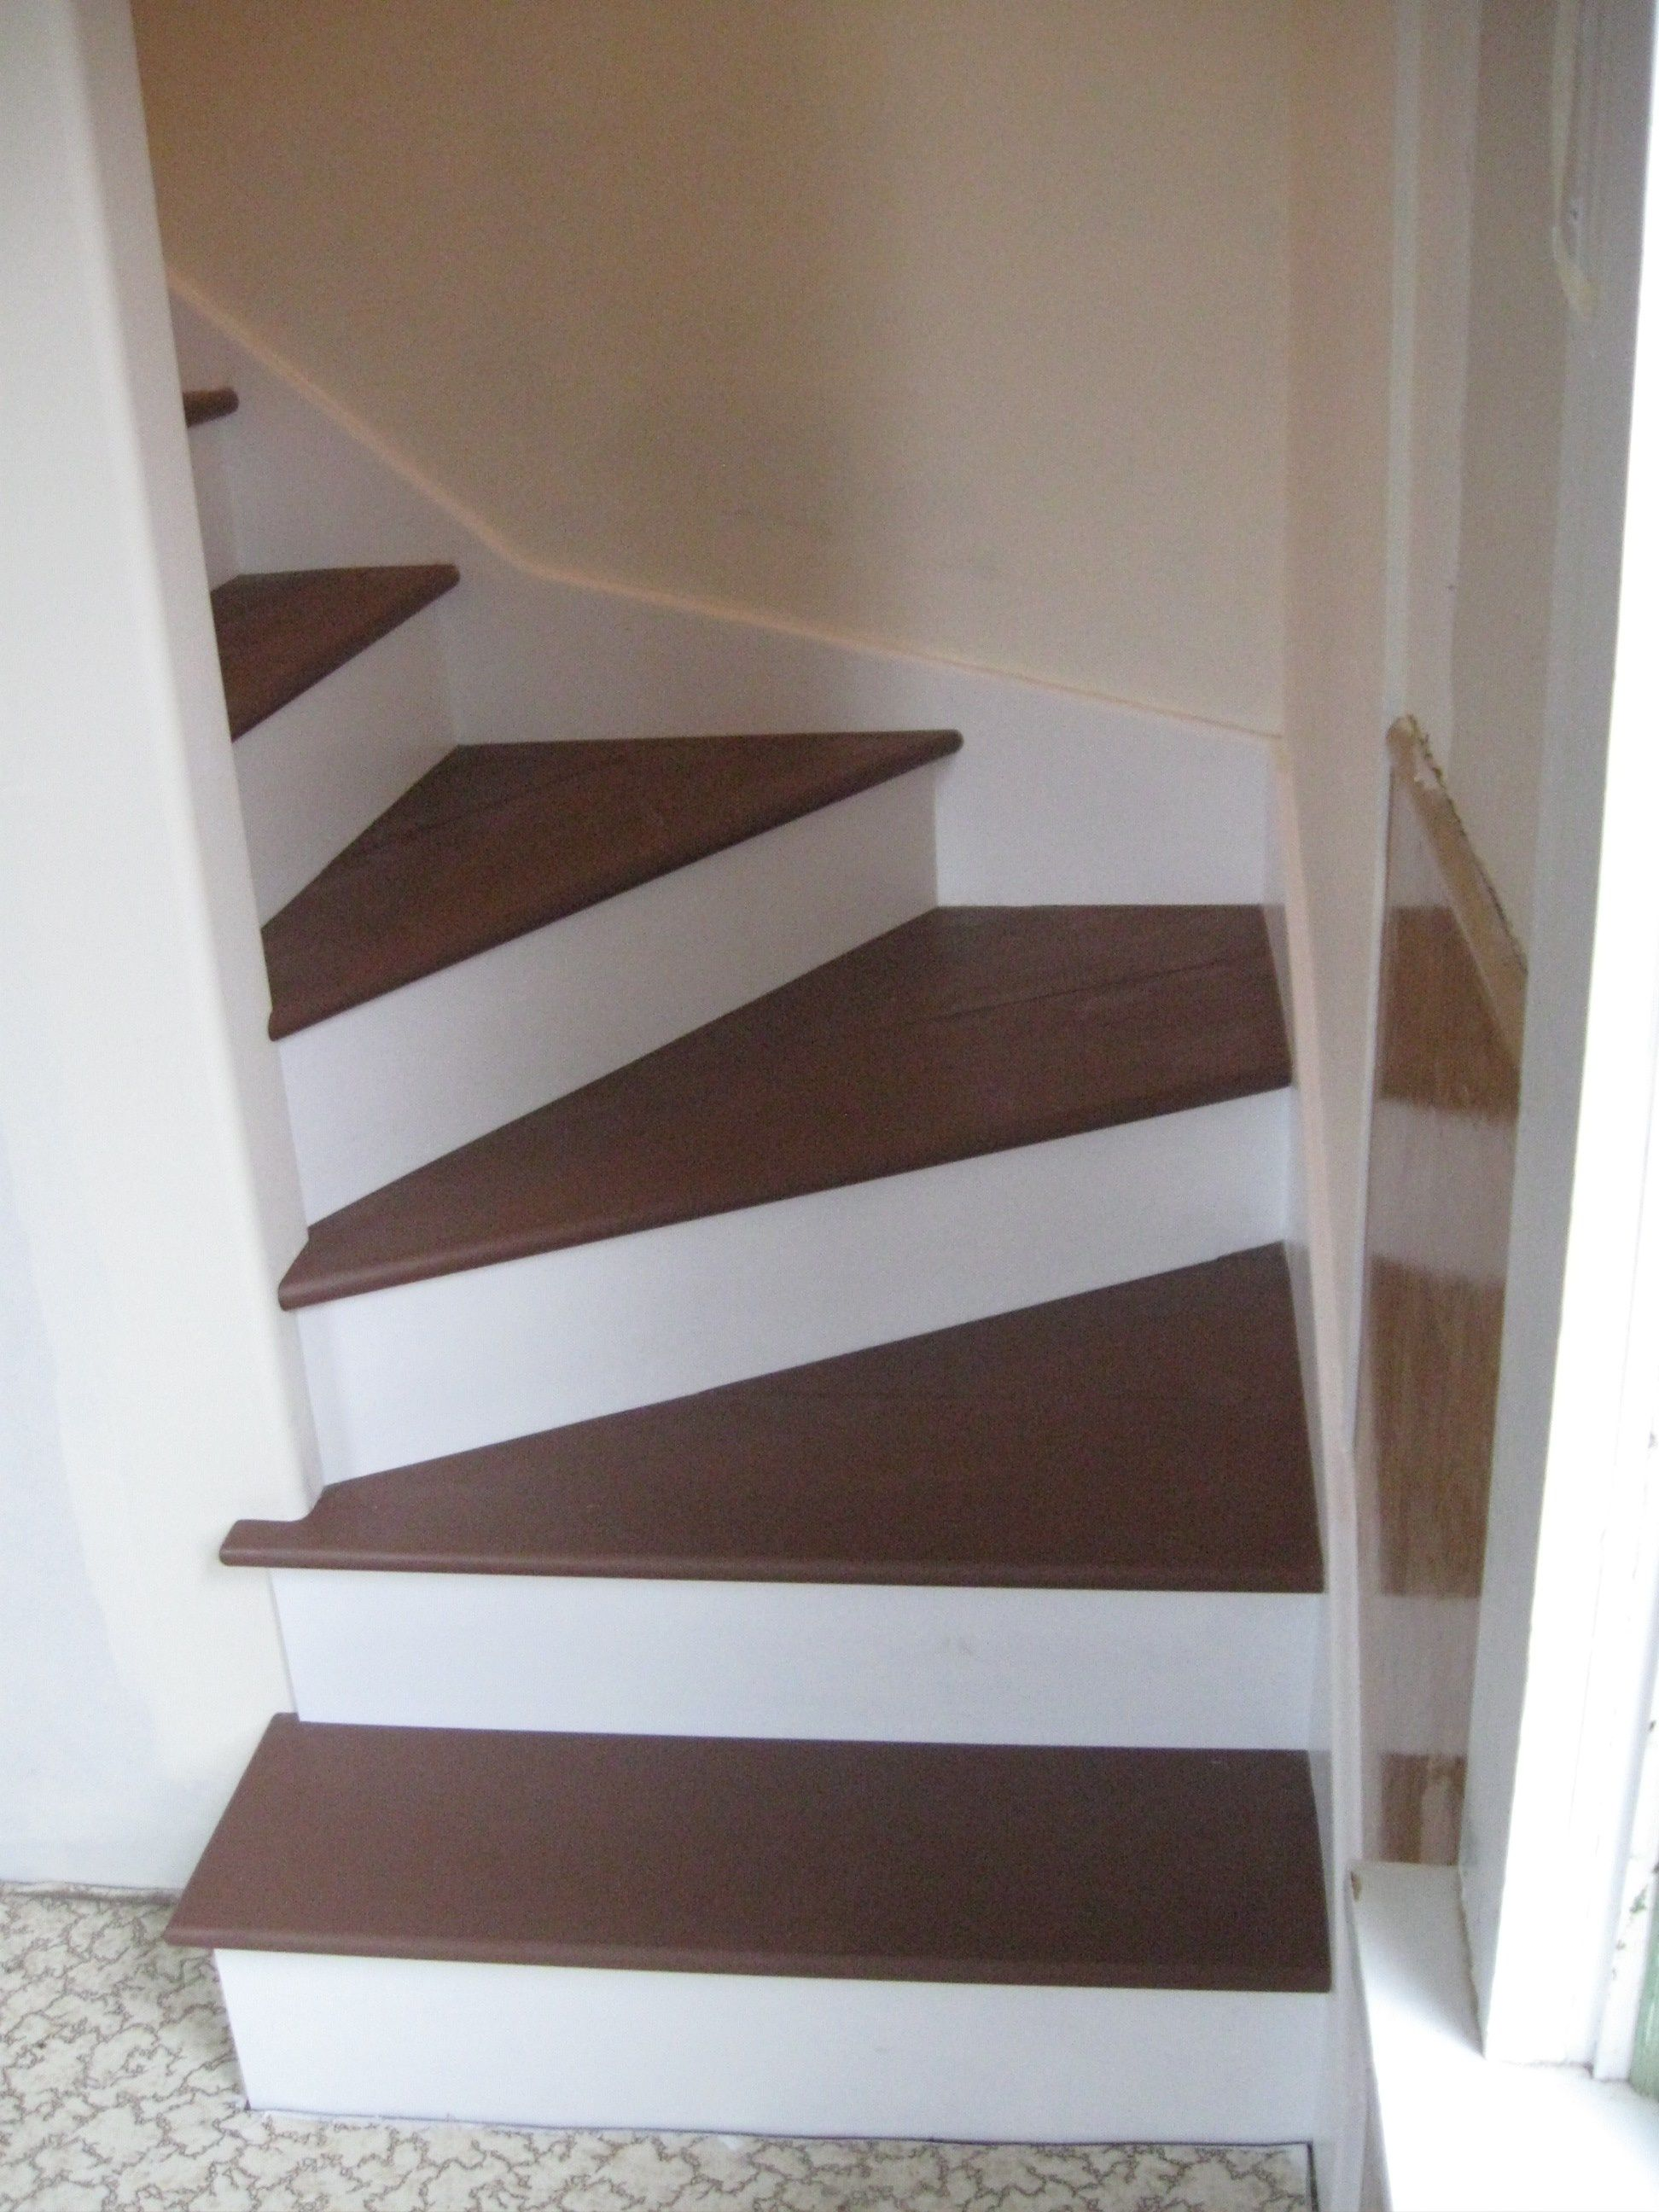 Best Replacing Steep Stairs With Winders This Should Work 400 x 300